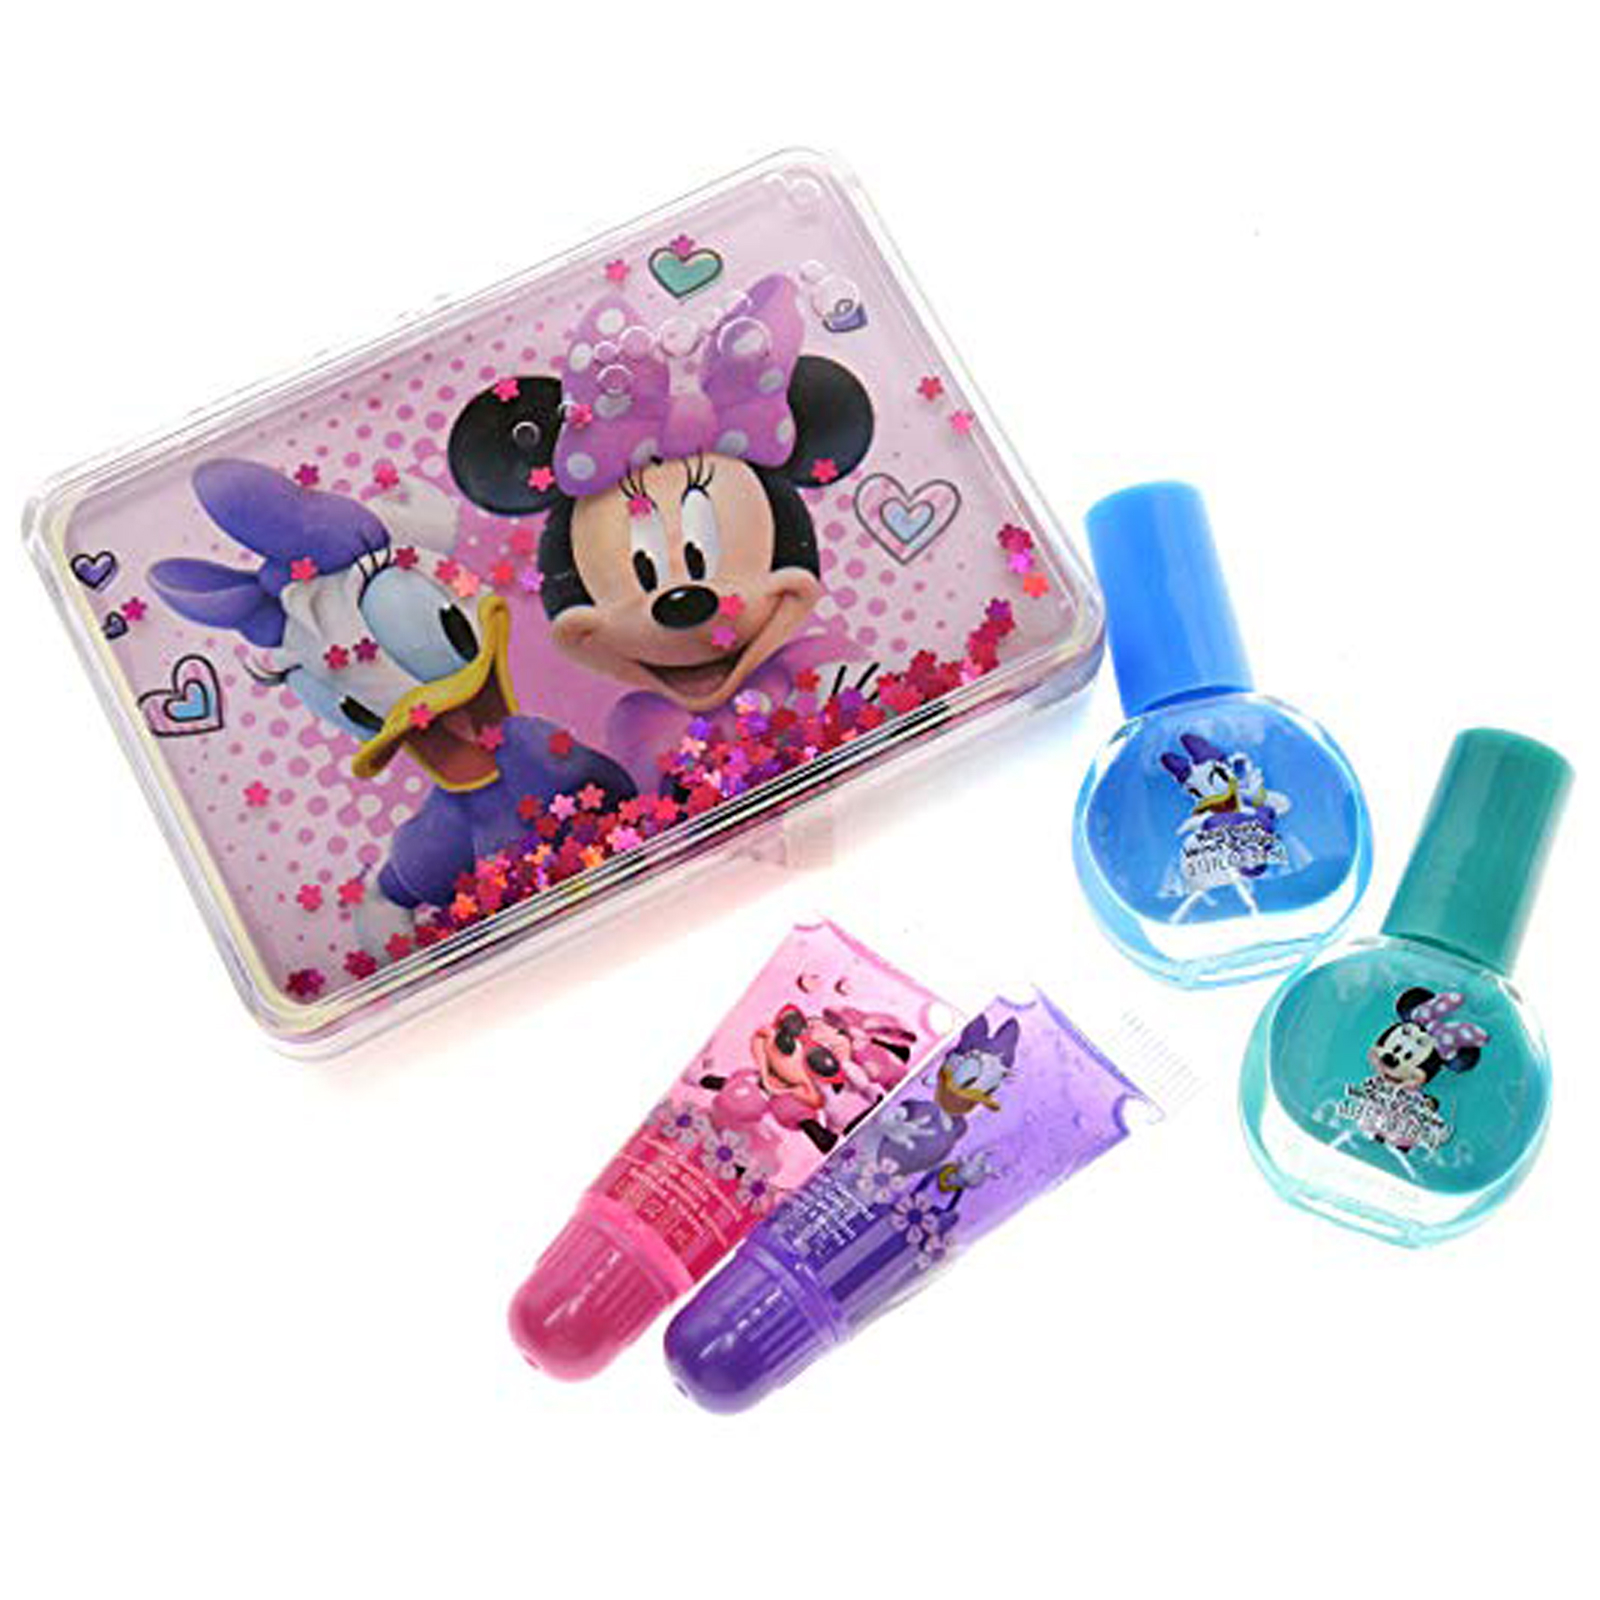 Disney Minnie Mouse and Daisy Duck Lip Gloss and Nail Polish Kit